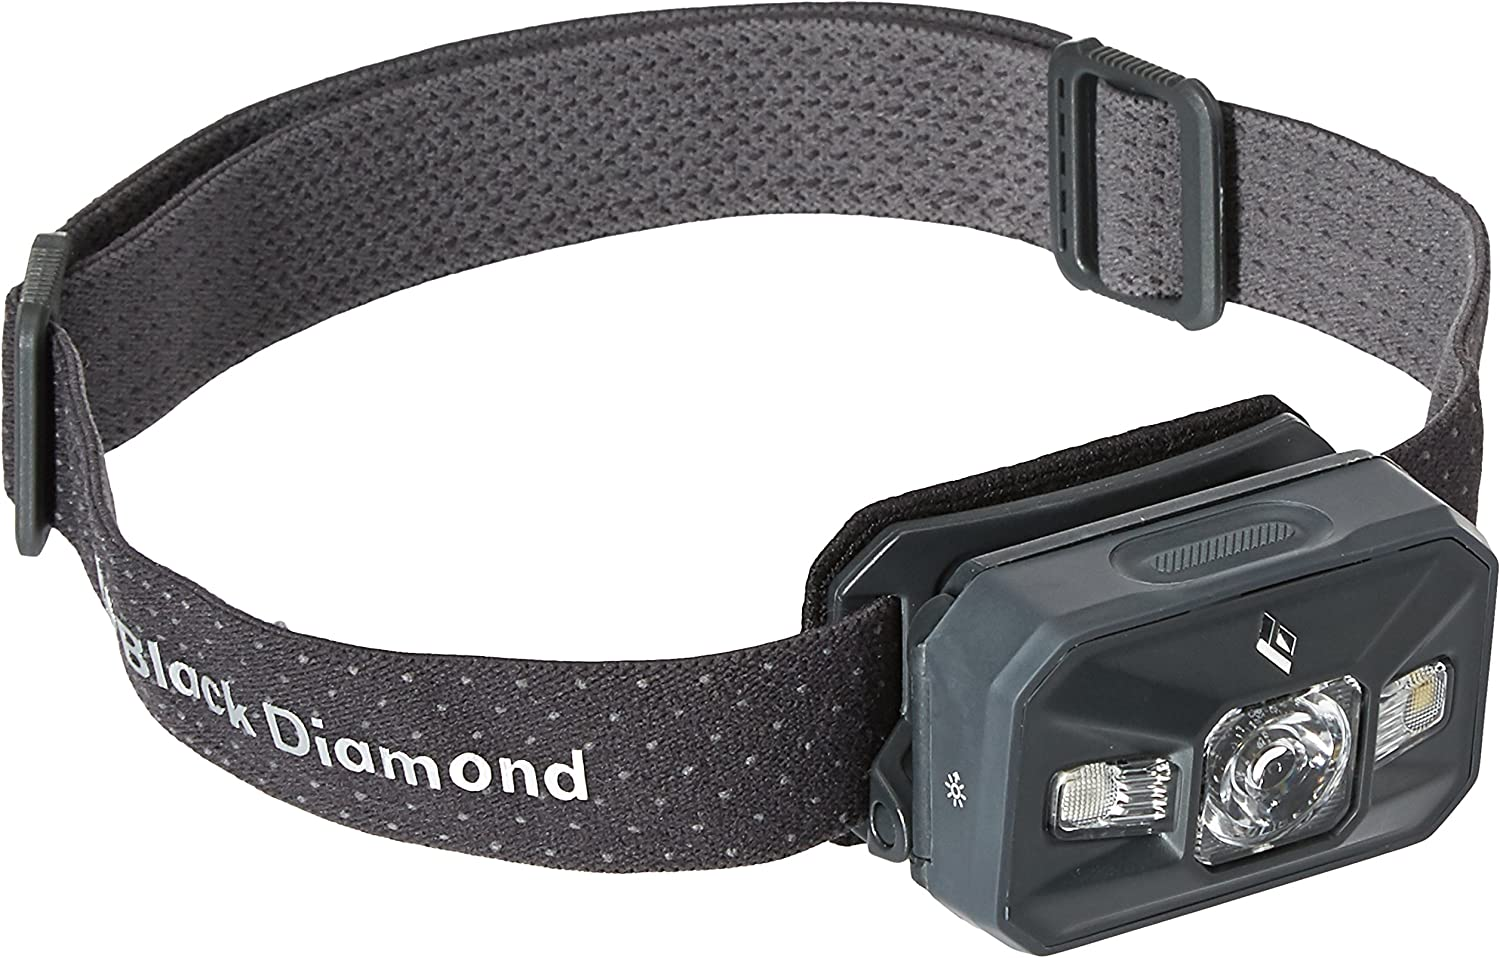 This is an image of the Black Diamond Storm headlamp, gray color, with lamp attached to its band, on a white background.